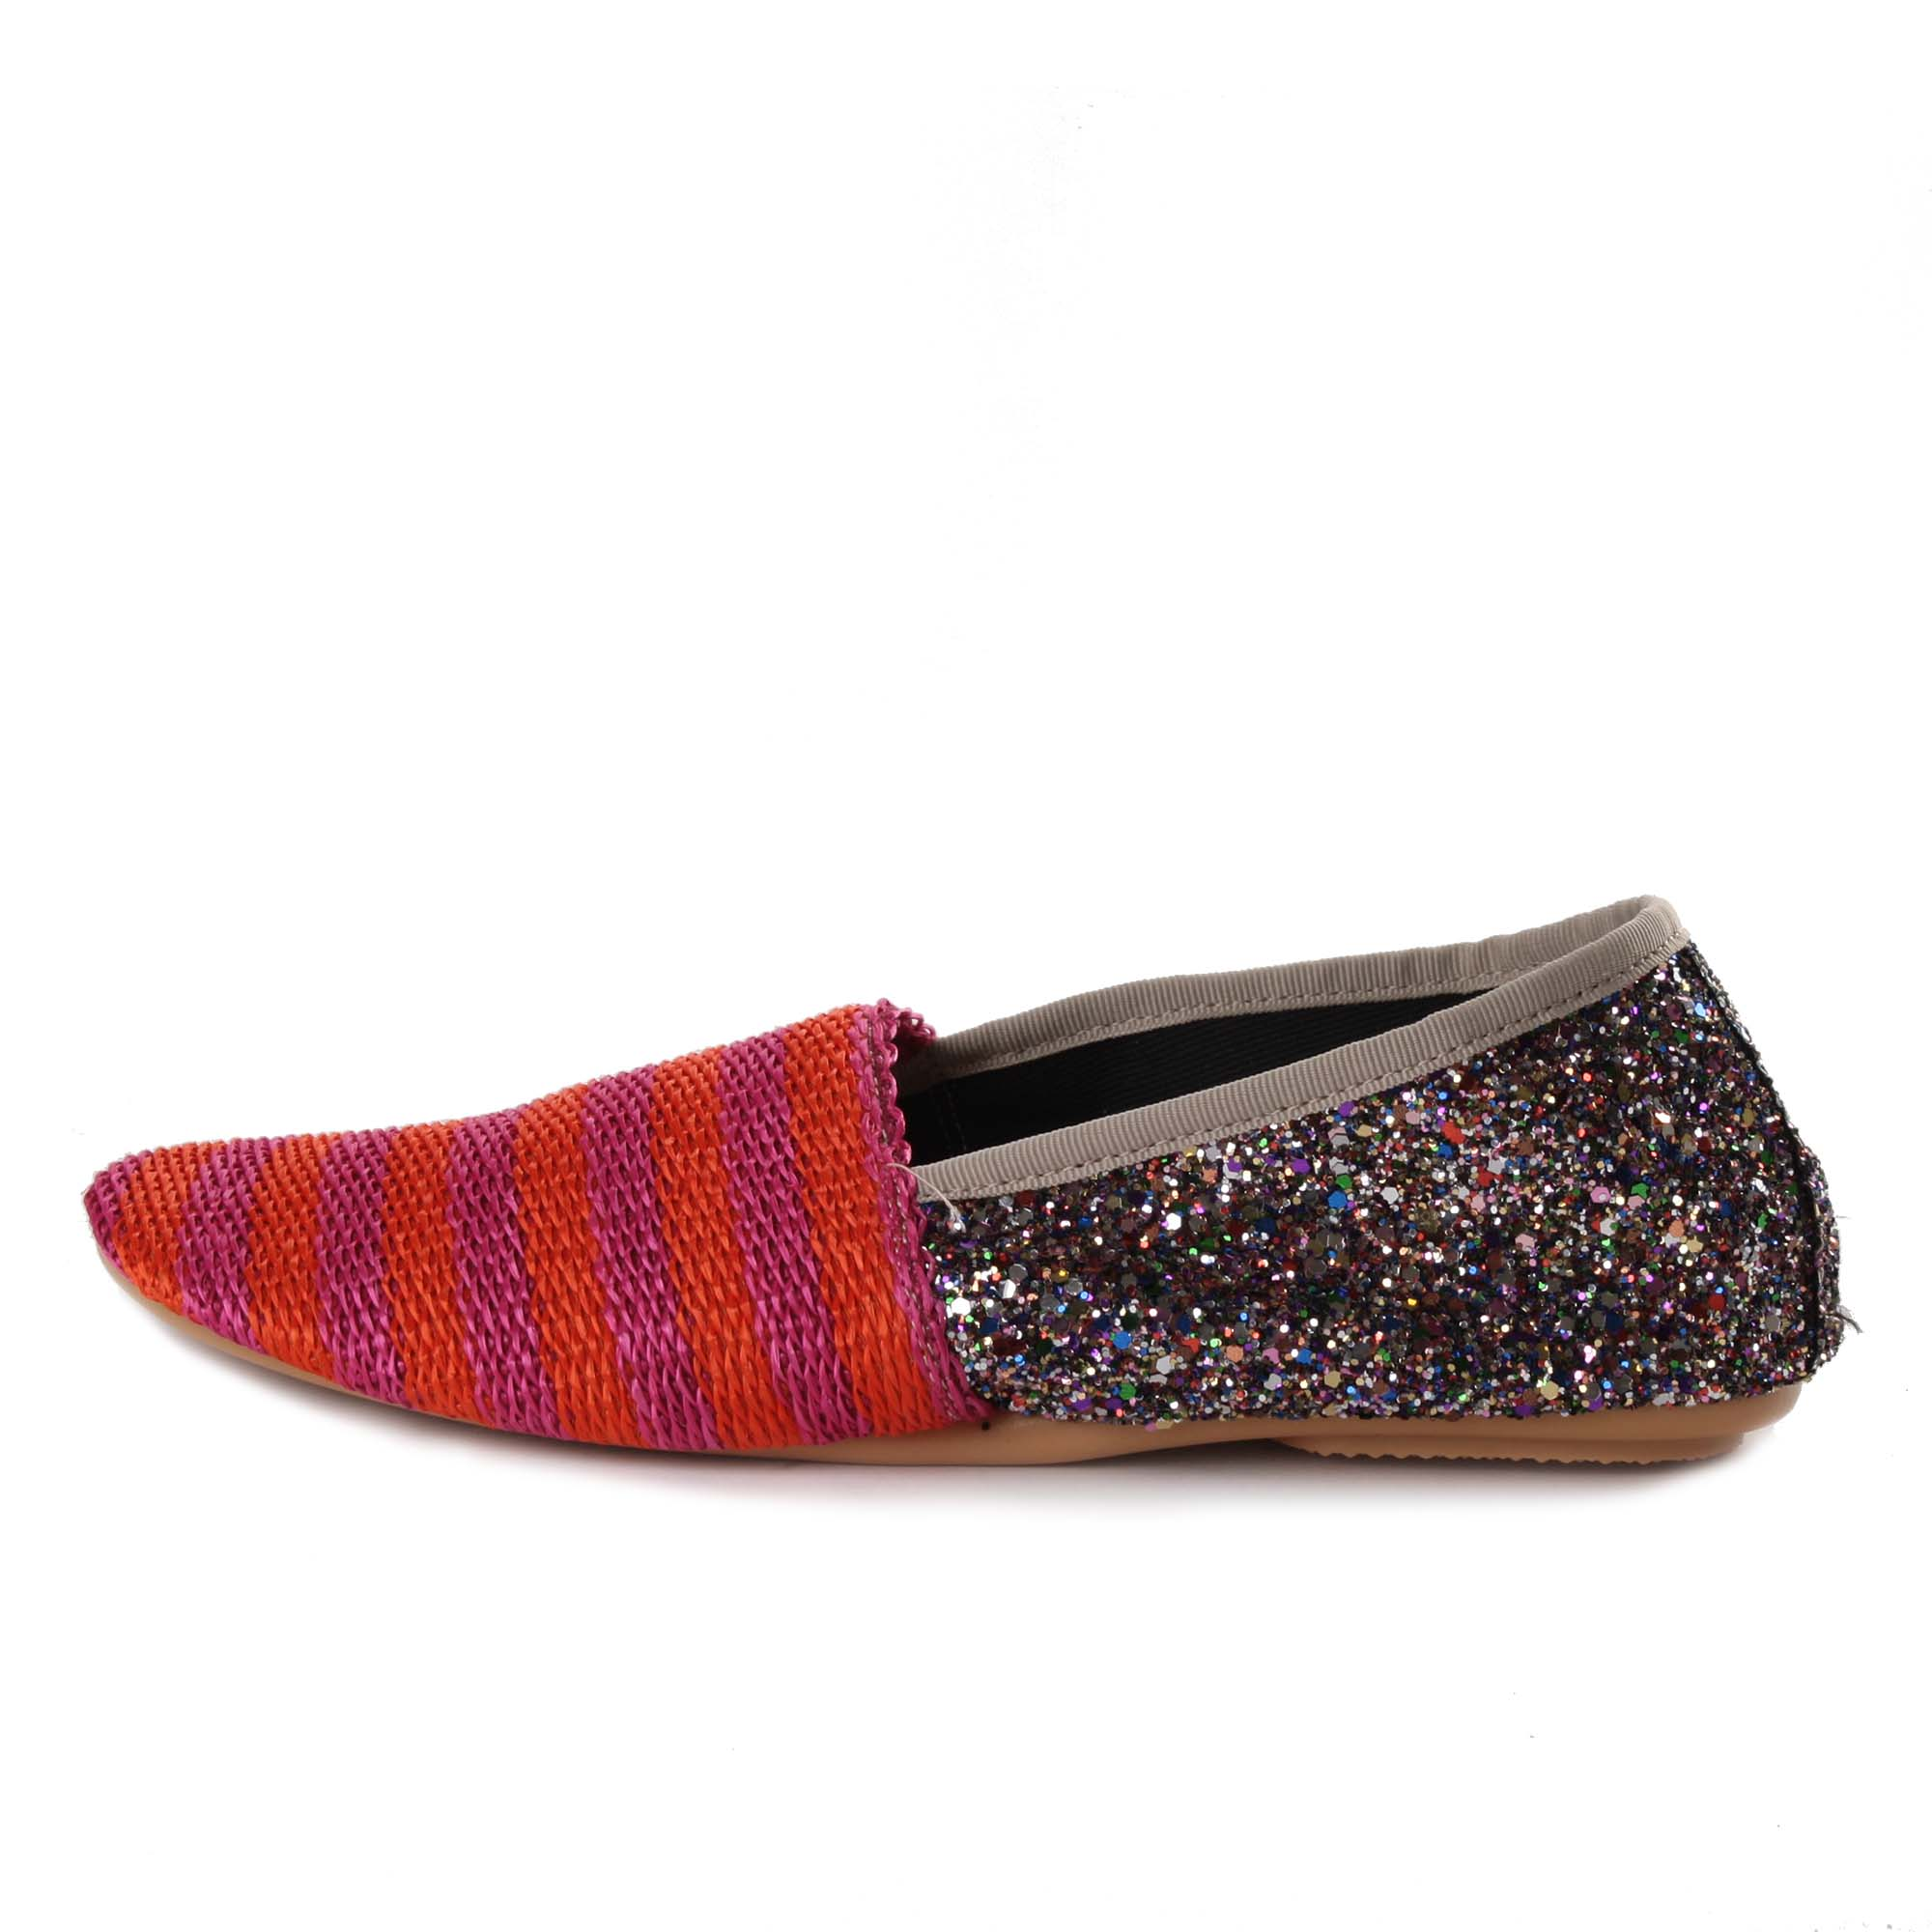 meet 9423b aba79 Soft Slipper Multicolor Glitter Arancio E Fuxia